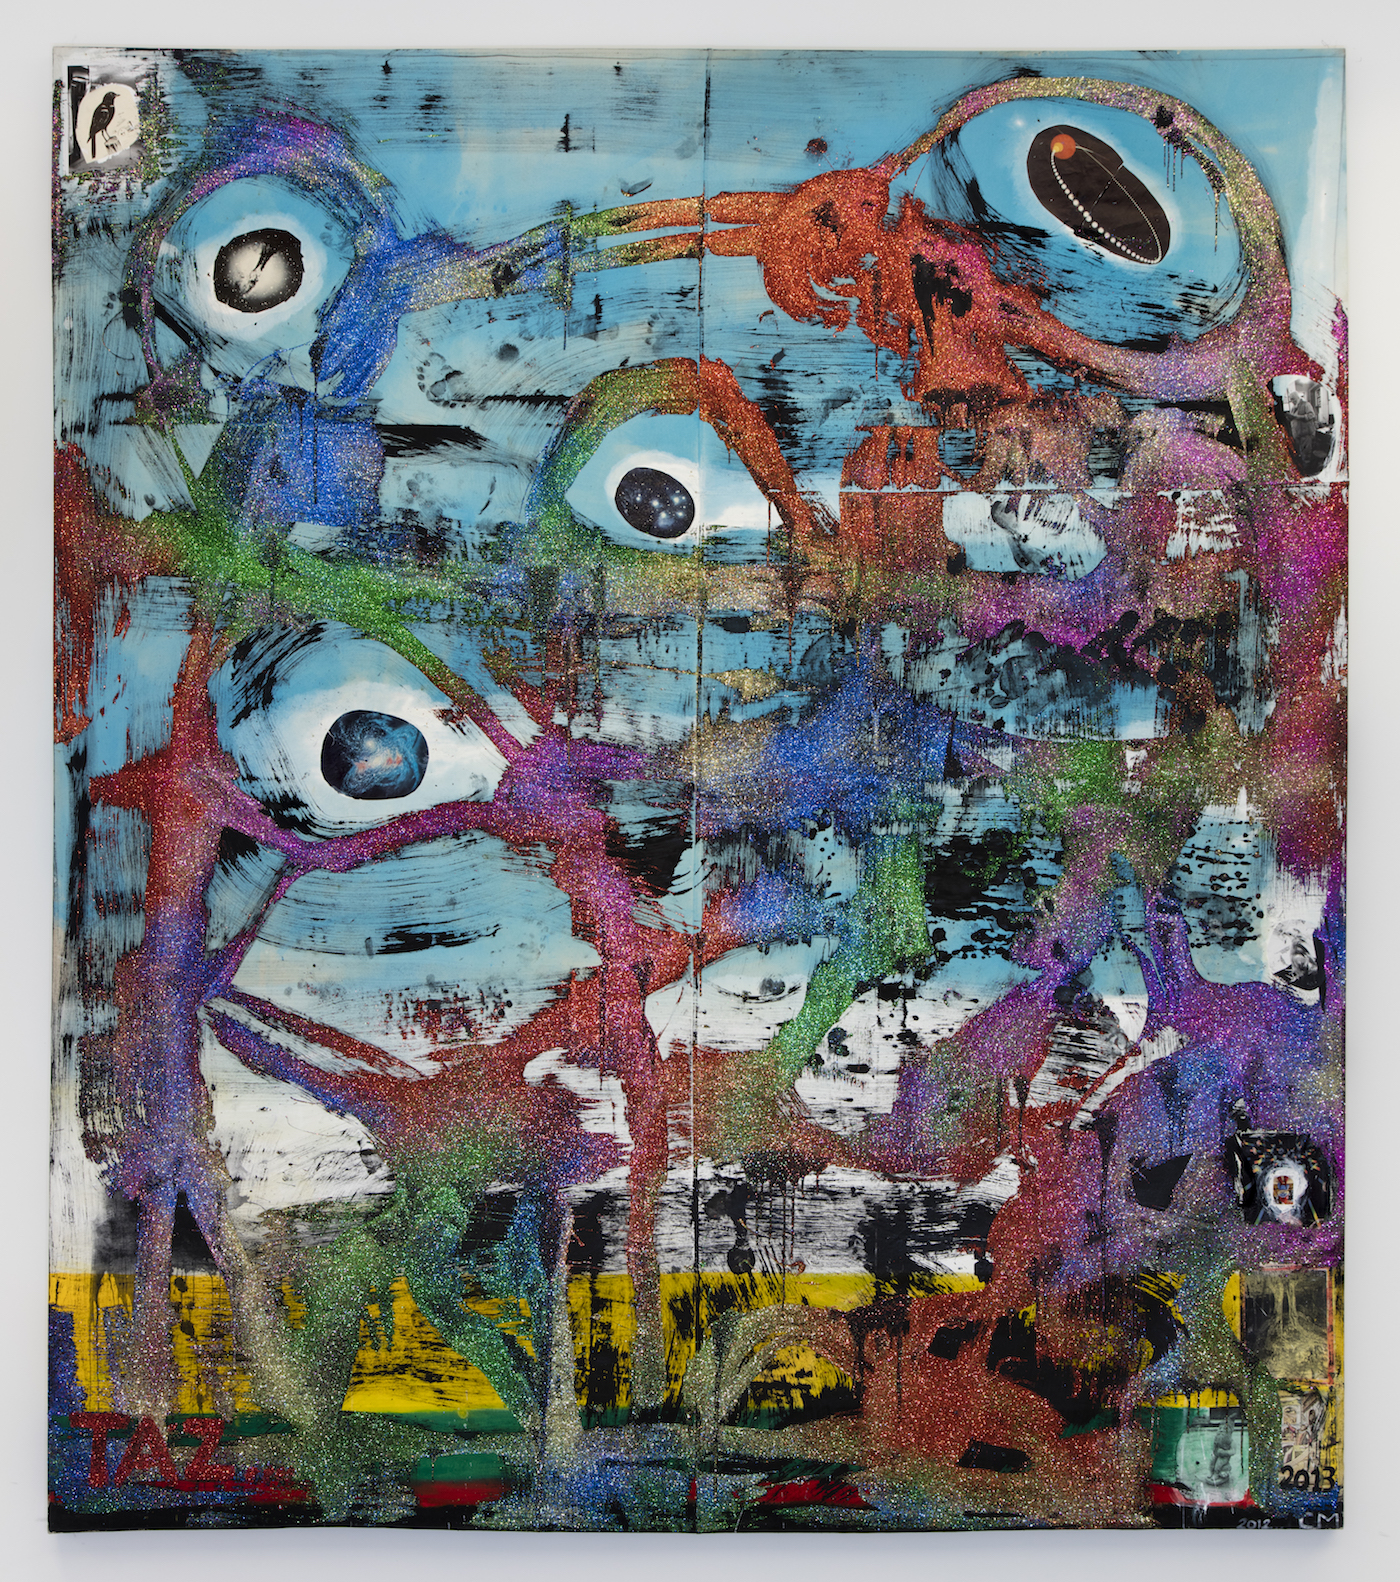 Chris Martin TAZ (orbits), 2012 acrylic, collage, glitter and oil on canvas 135 1/8 x 117 3/4 x 2 3/4 inches